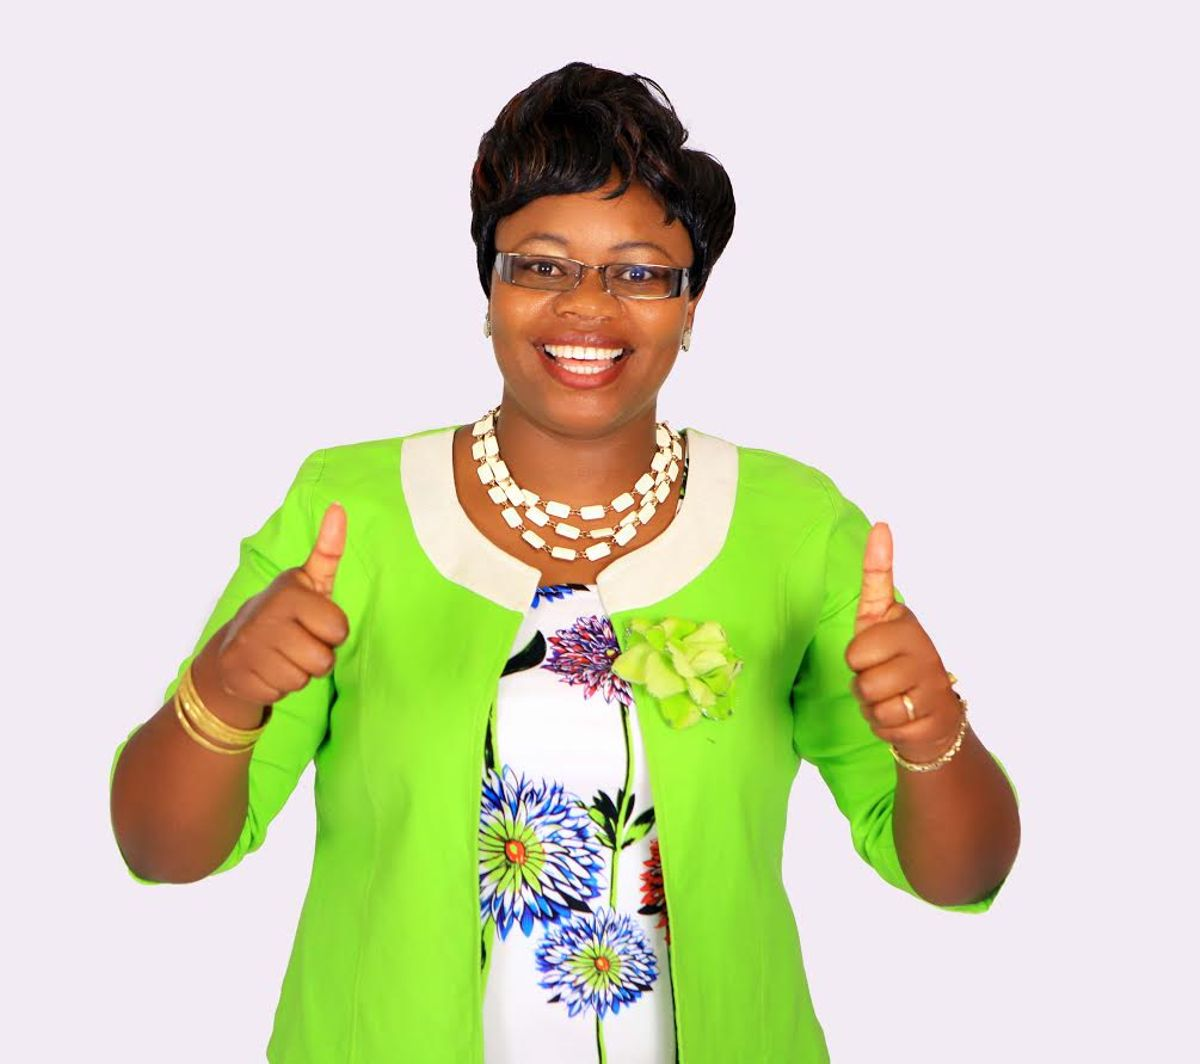 Kiambu woman representative Gathoni wa Muchomba poses for a photo.